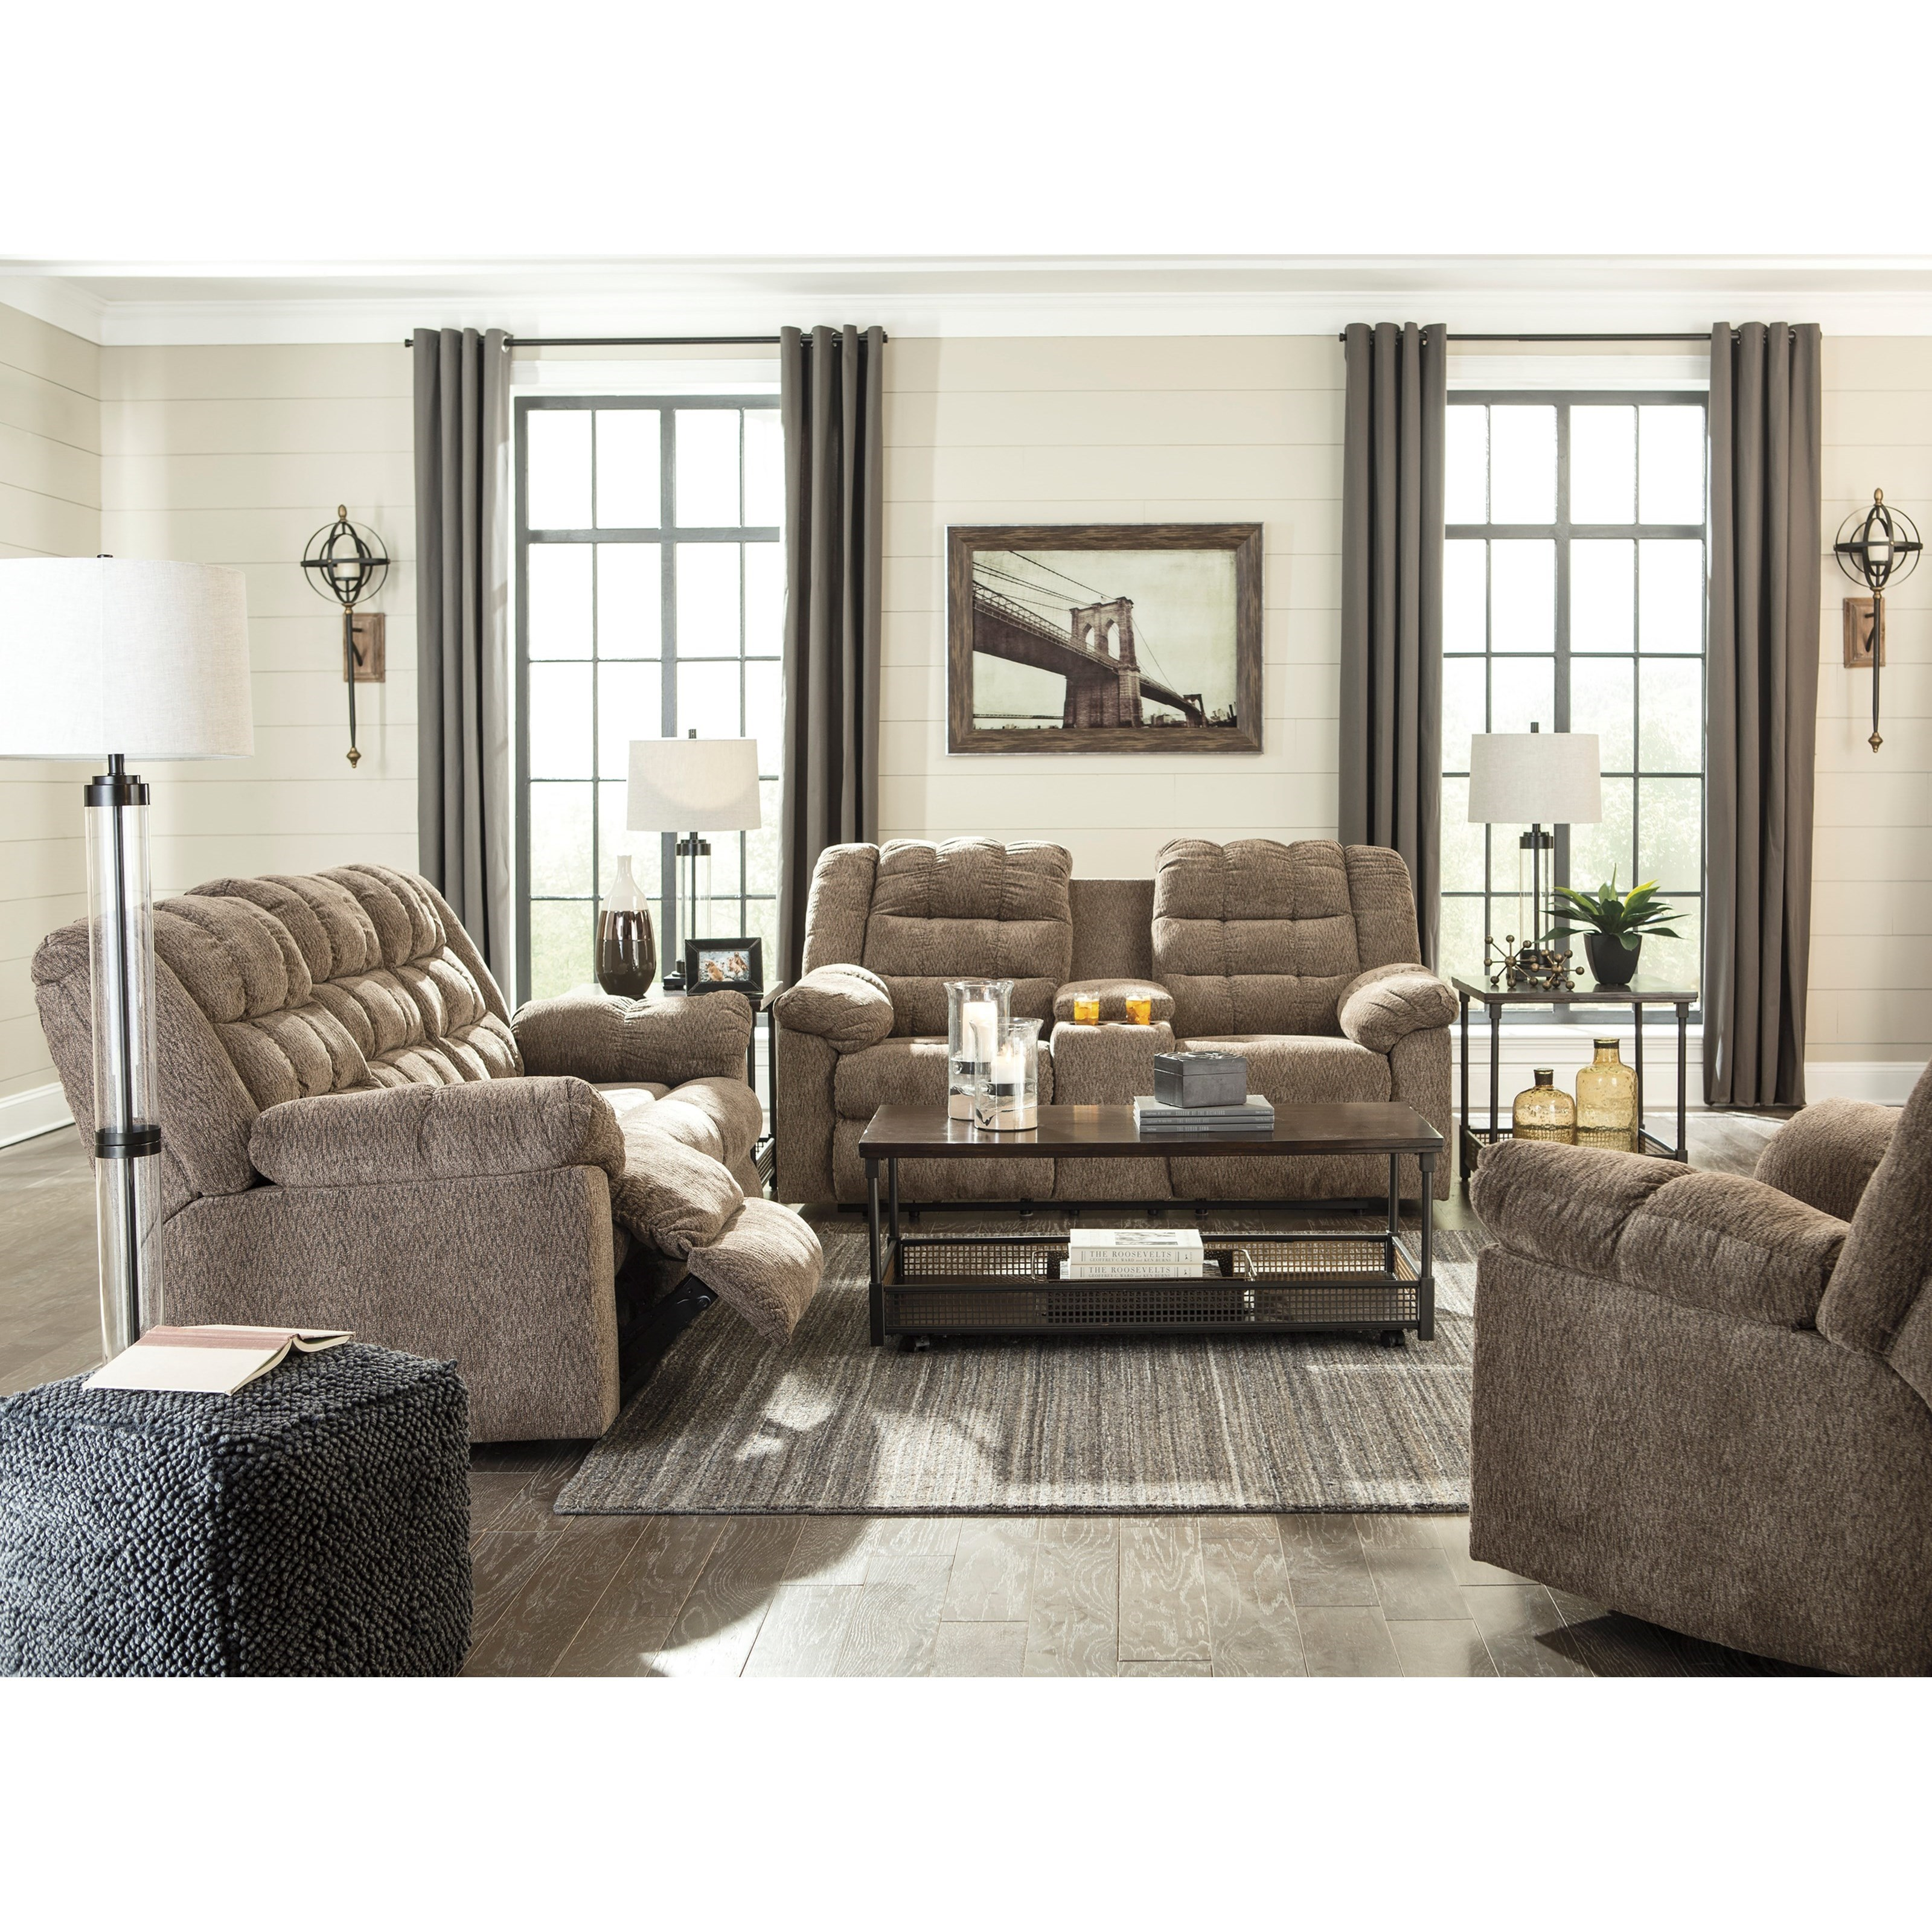 Workhorse Reclining Living Room Group by Signature Design by Ashley at Northeast Factory Direct